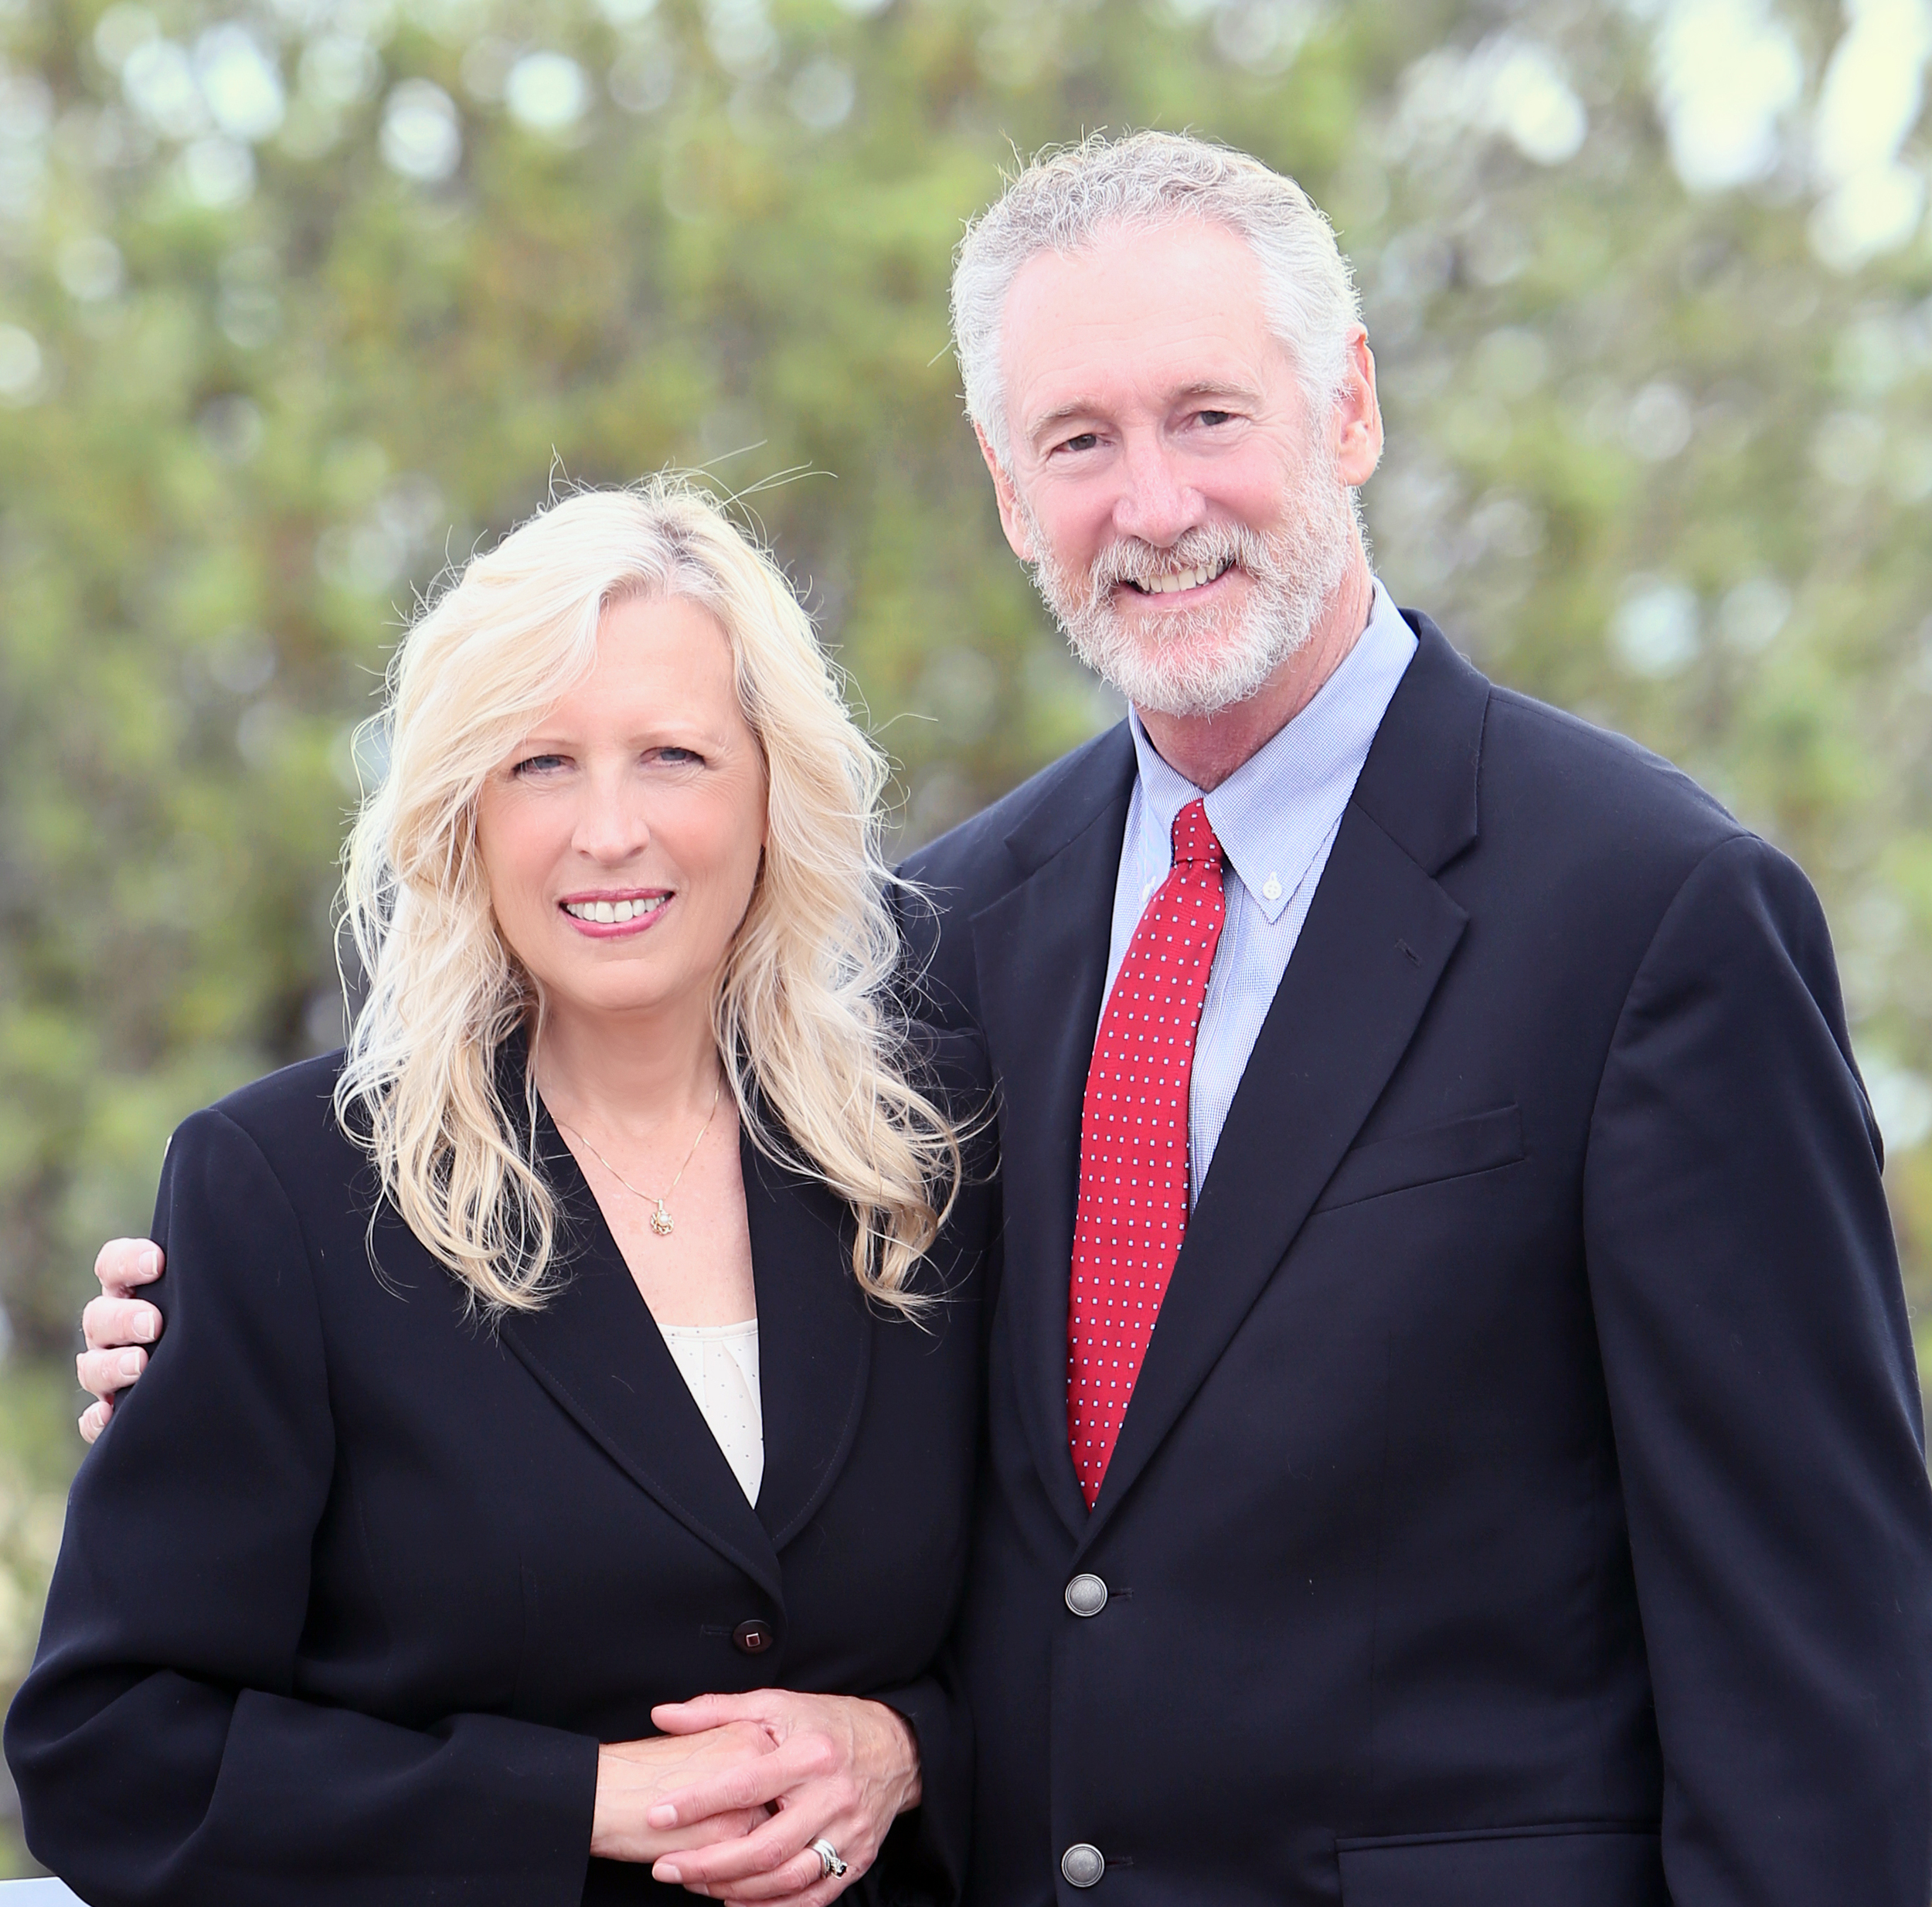 John M. Miller and Dr. Jenelle S. Miller, Husband and Wife Team